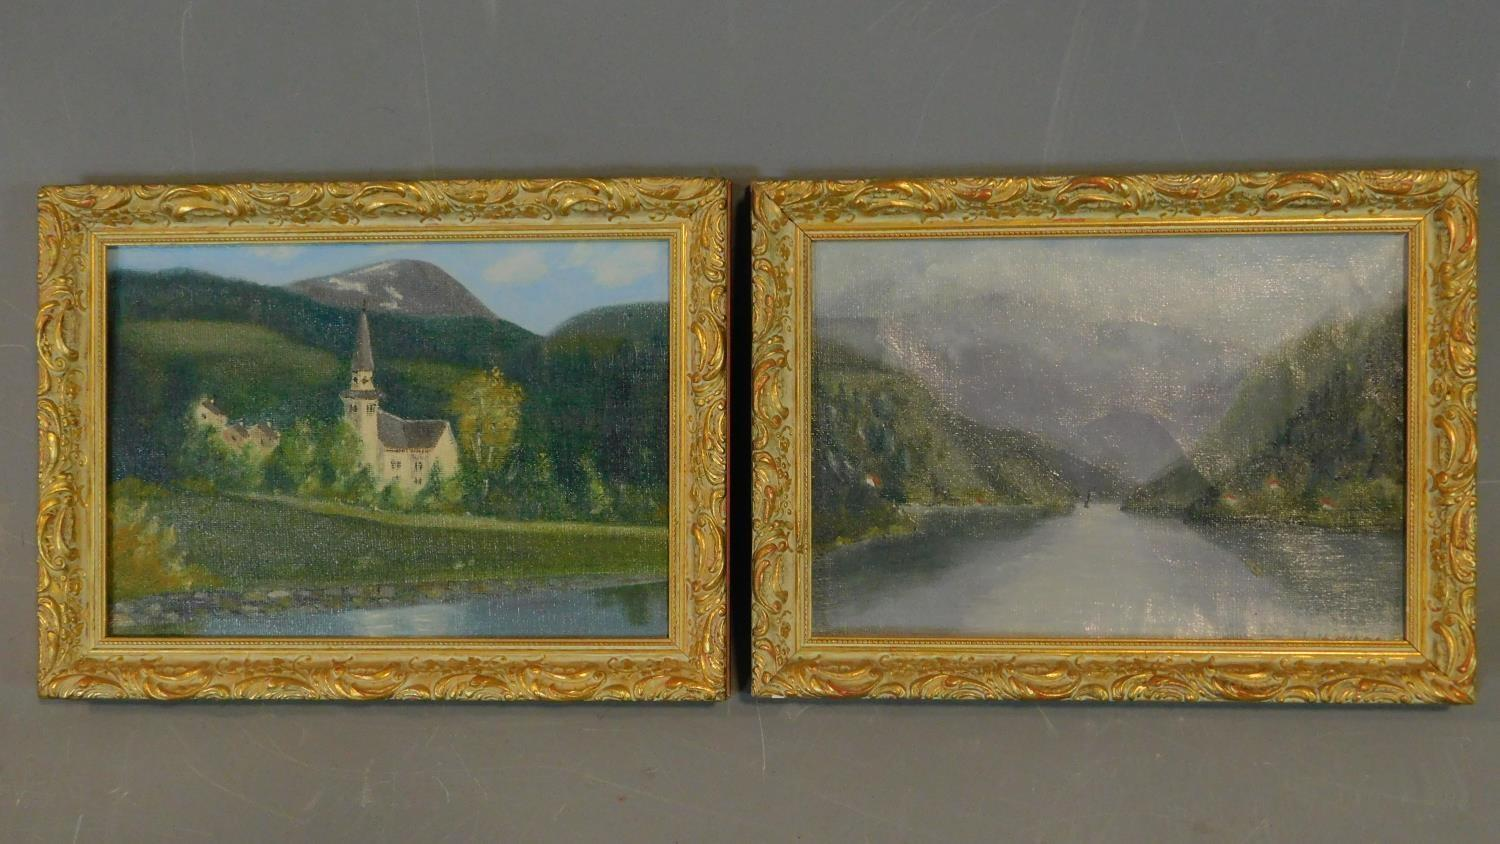 A pair of gilt framed oils on board, lake scenes. 29x21.5cm